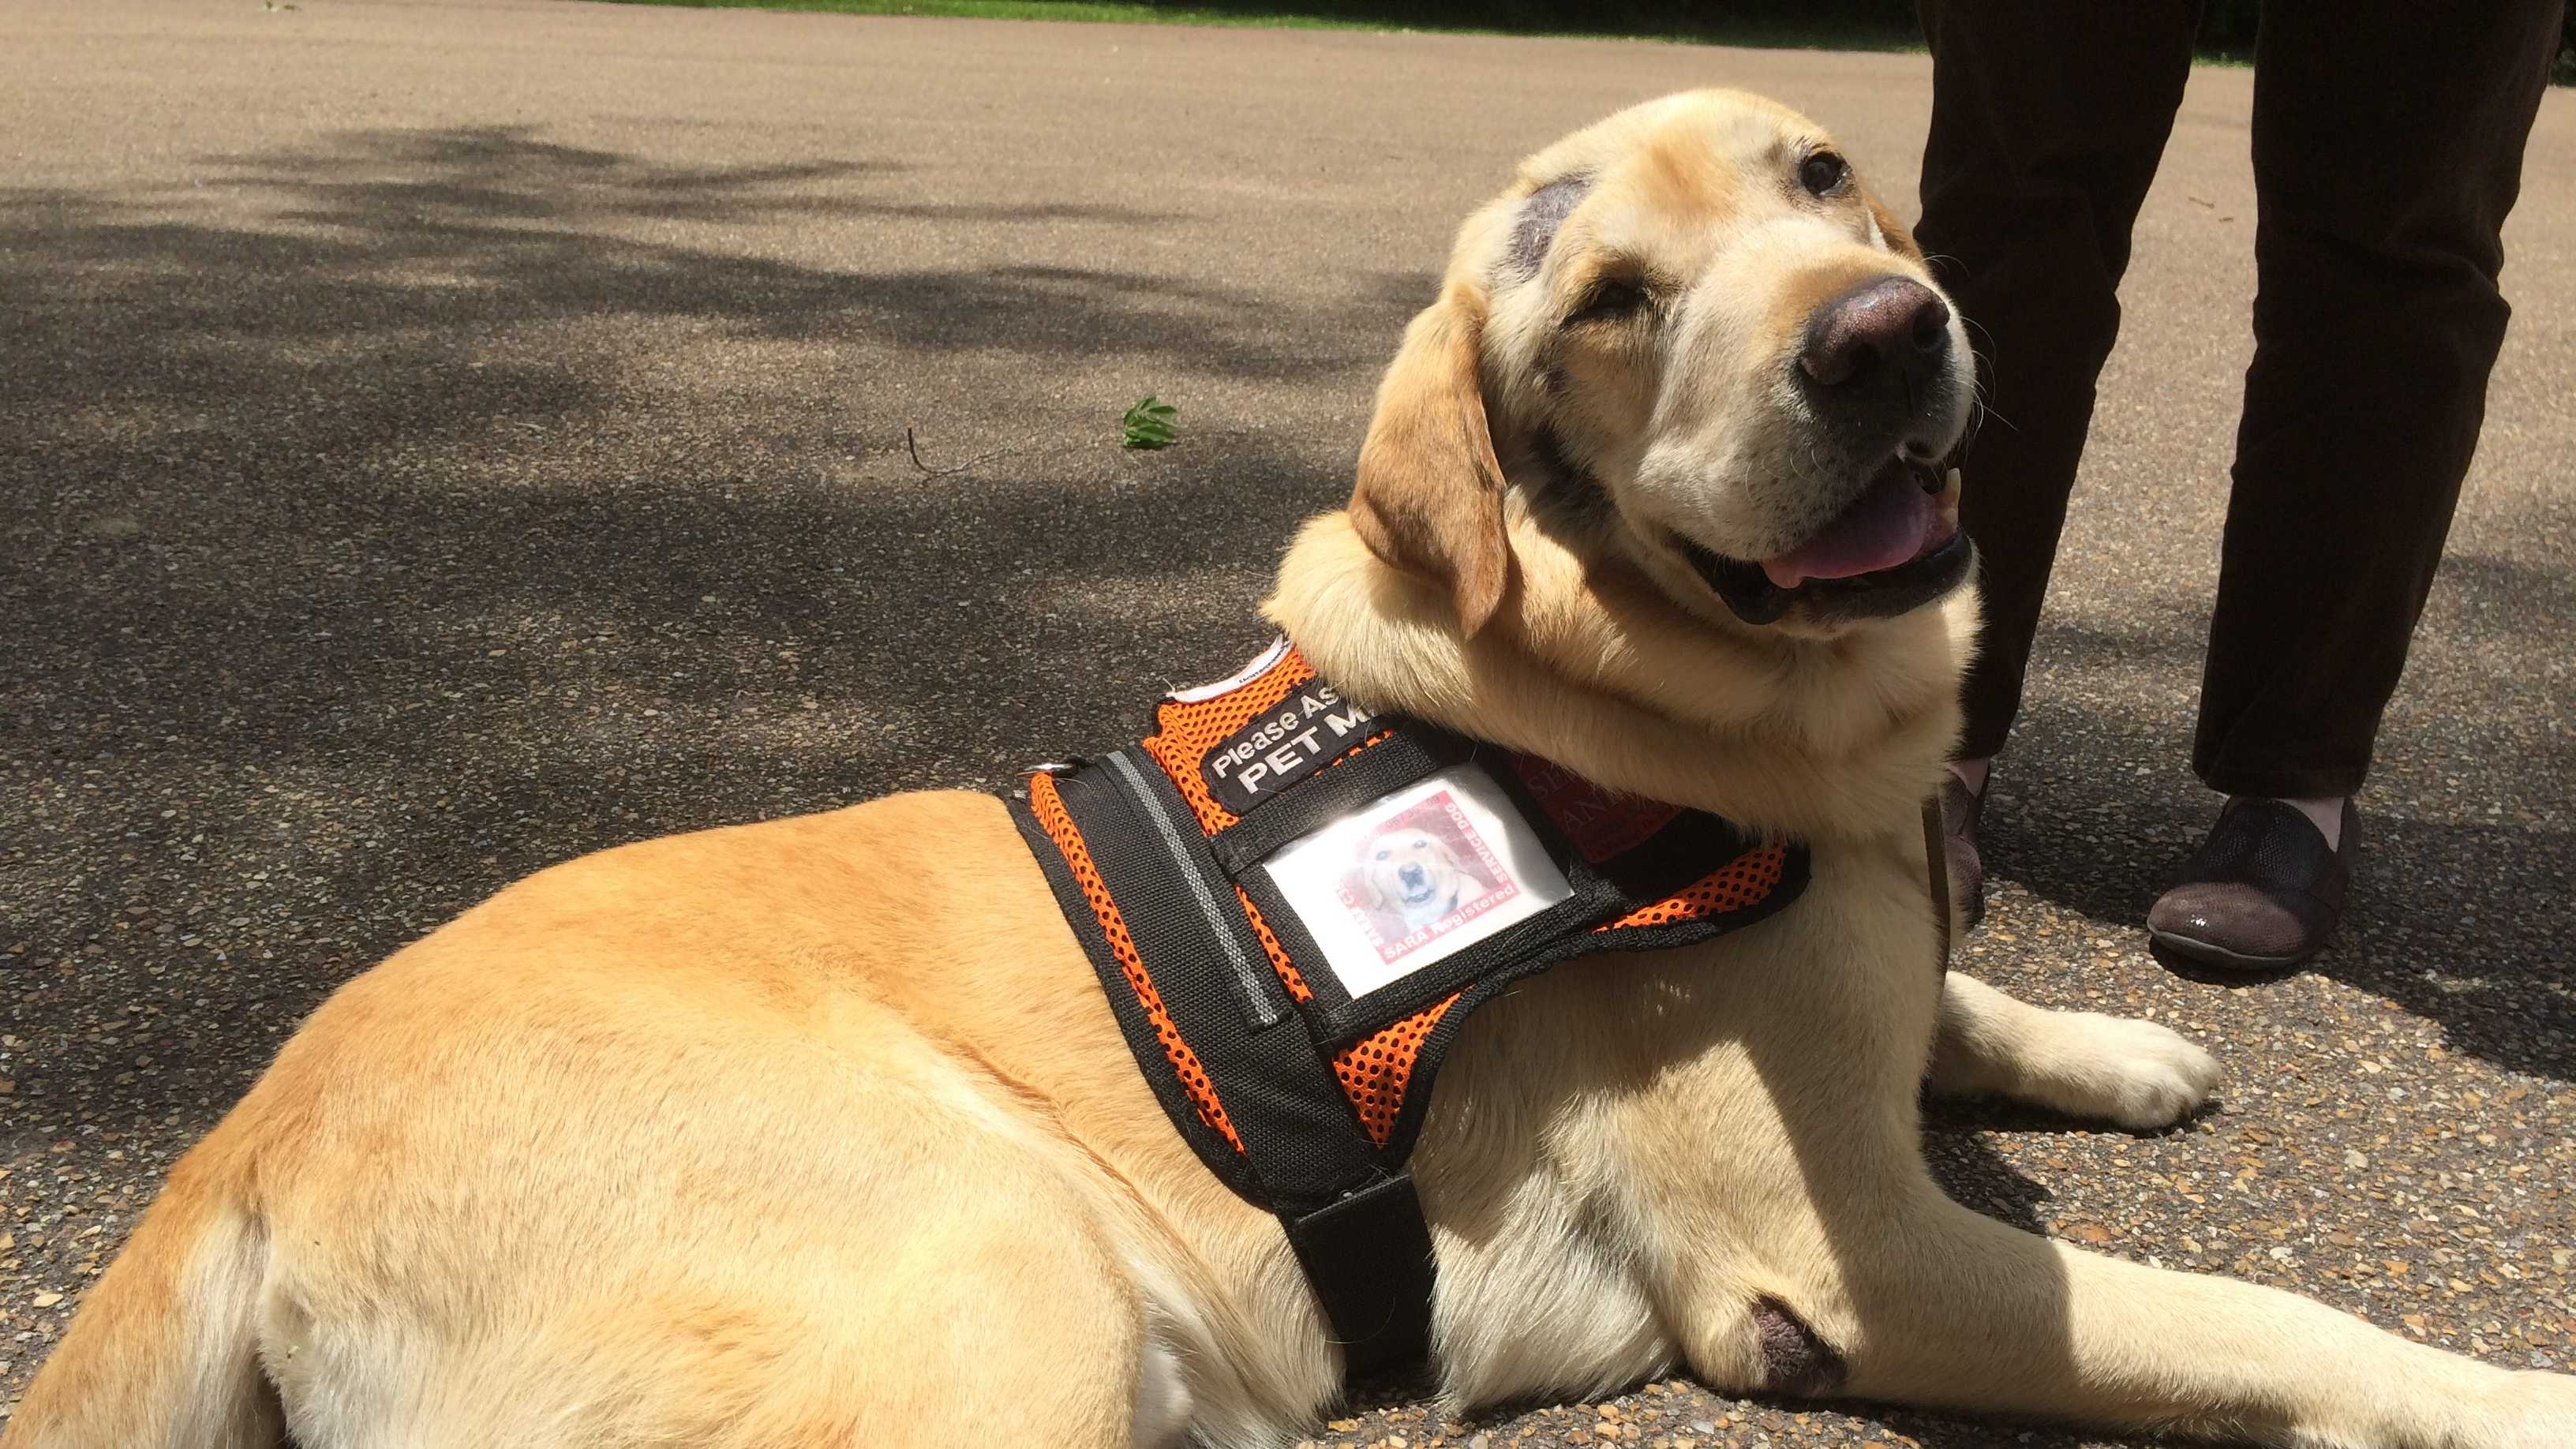 Booster the service dog